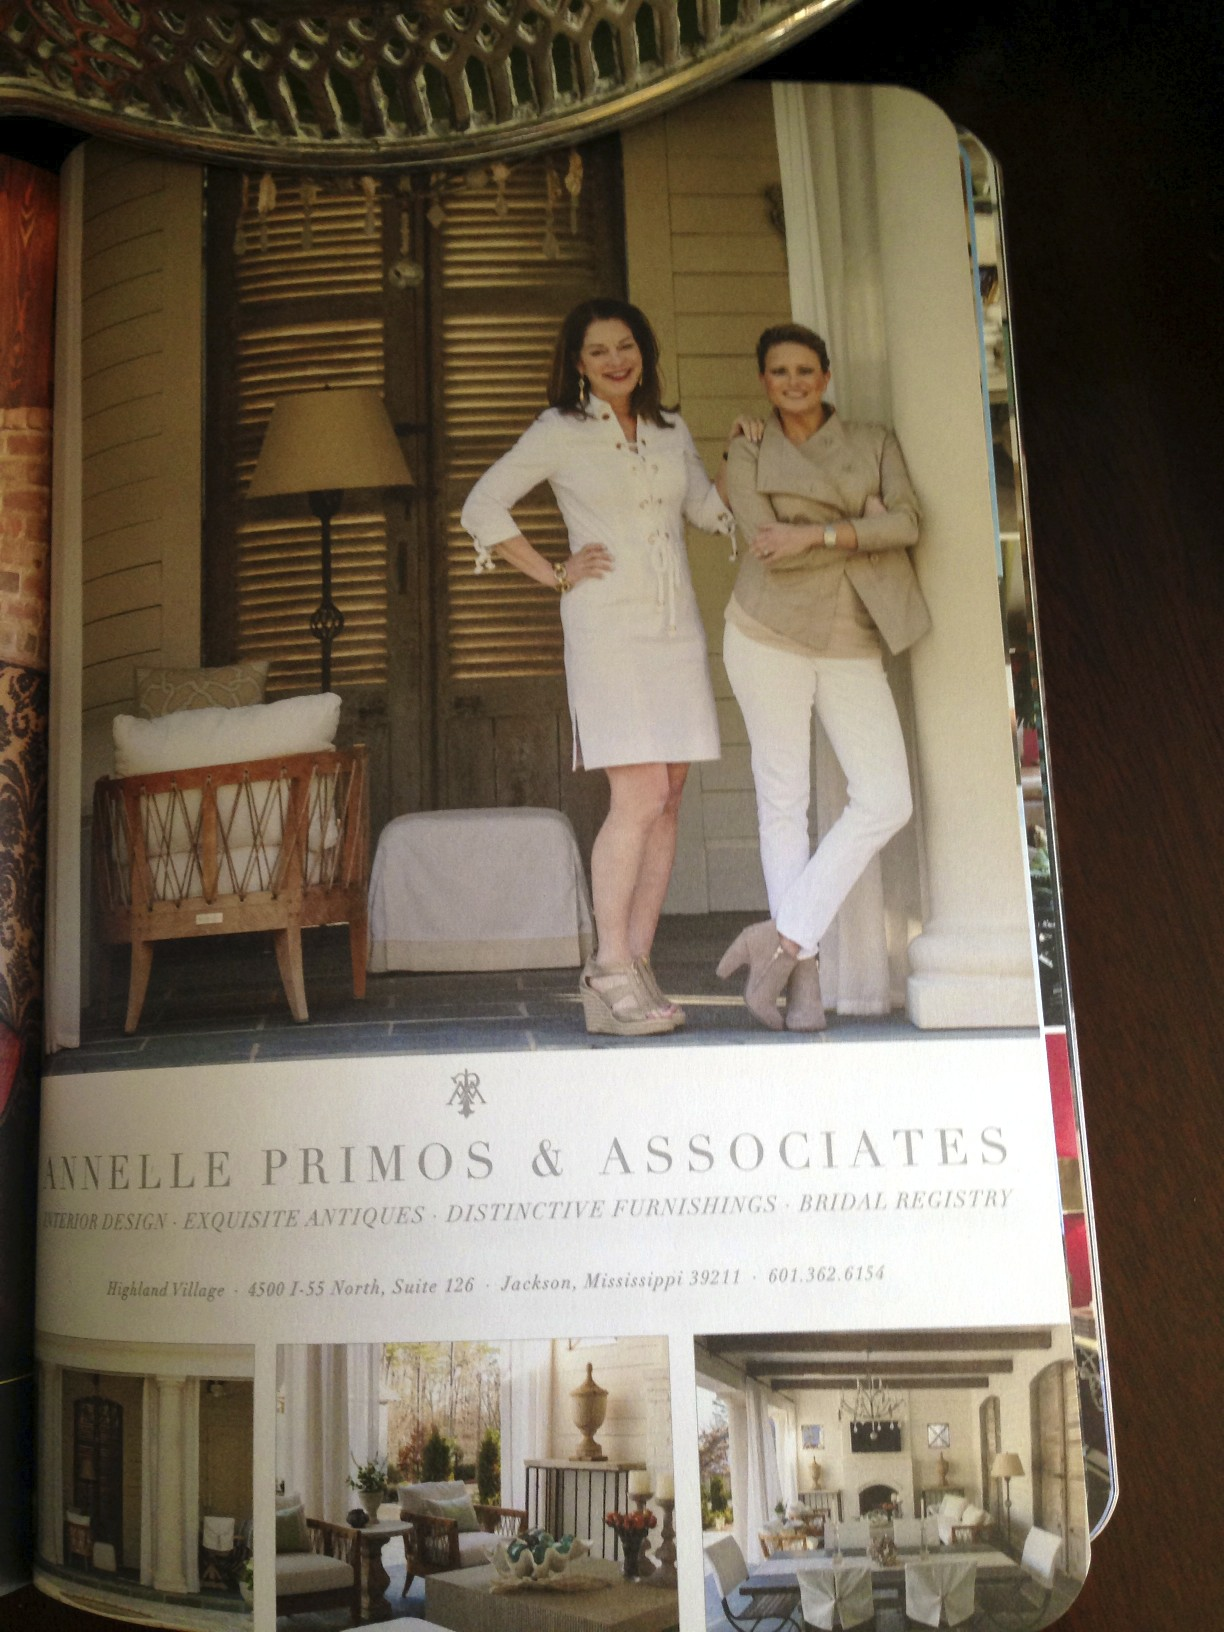 Annelle Primos and Associates